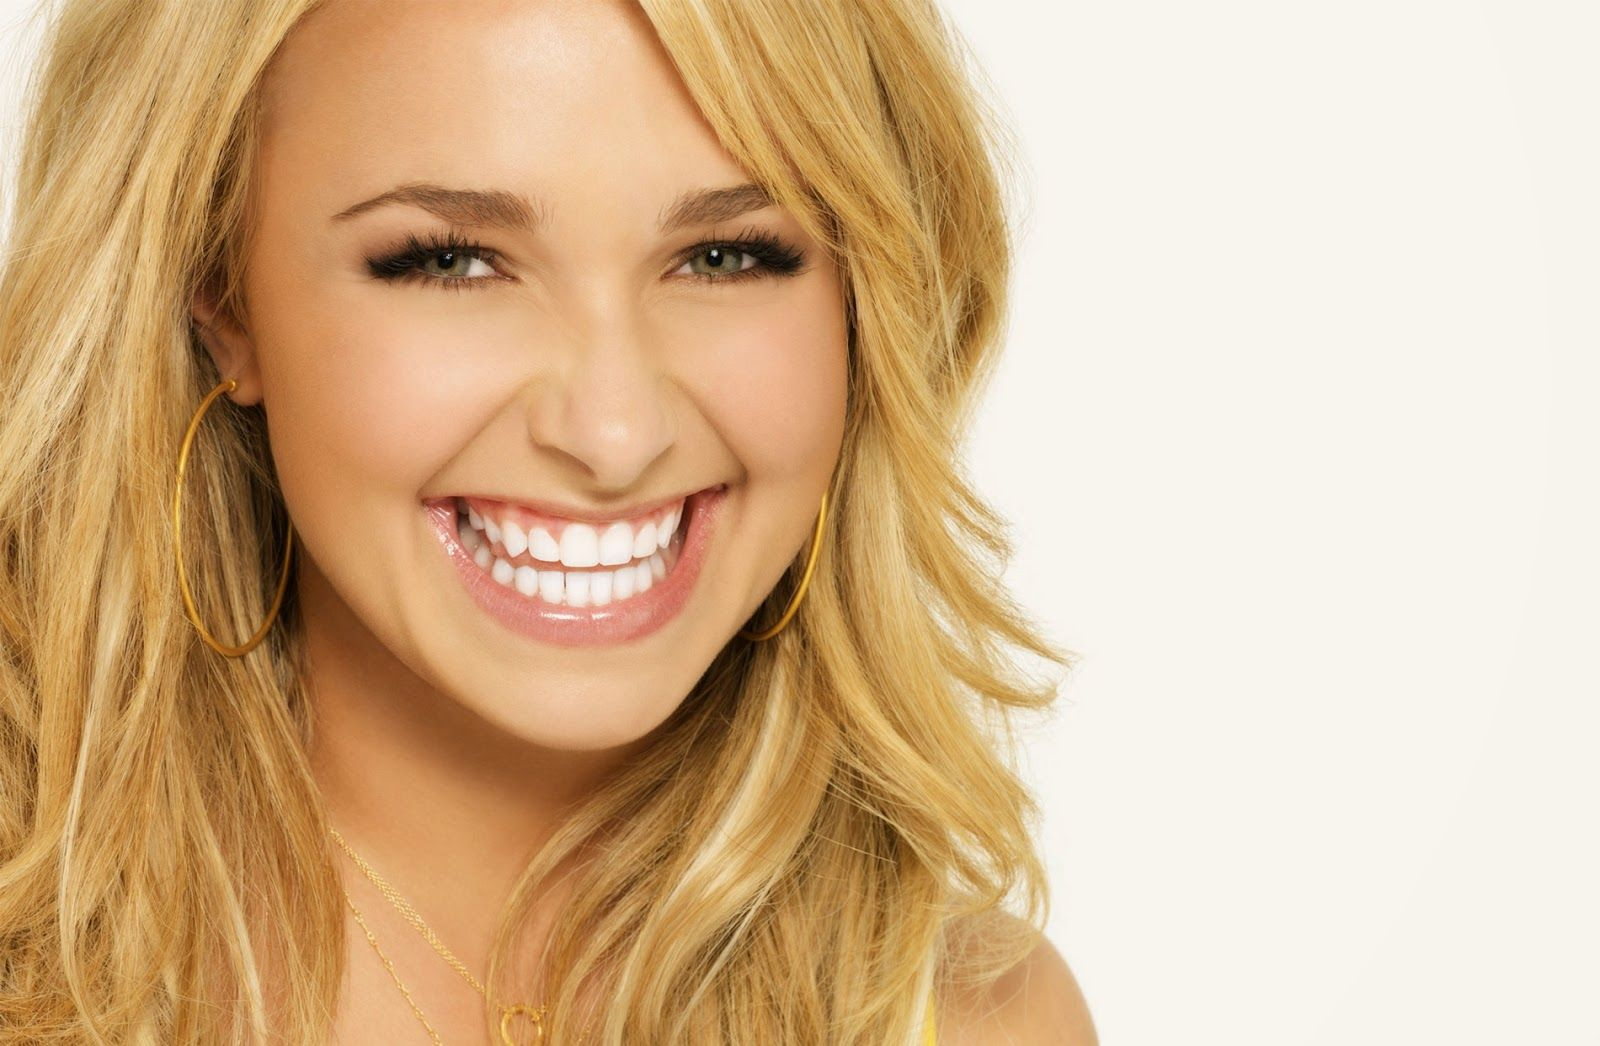 Hayden Panettiere  smile Girls Beautiful  Amazing Hd Wallpapers 100% High Definition HD and High Quality Most HQ Picture, Image, Wallpapers free download for Your Devise Version